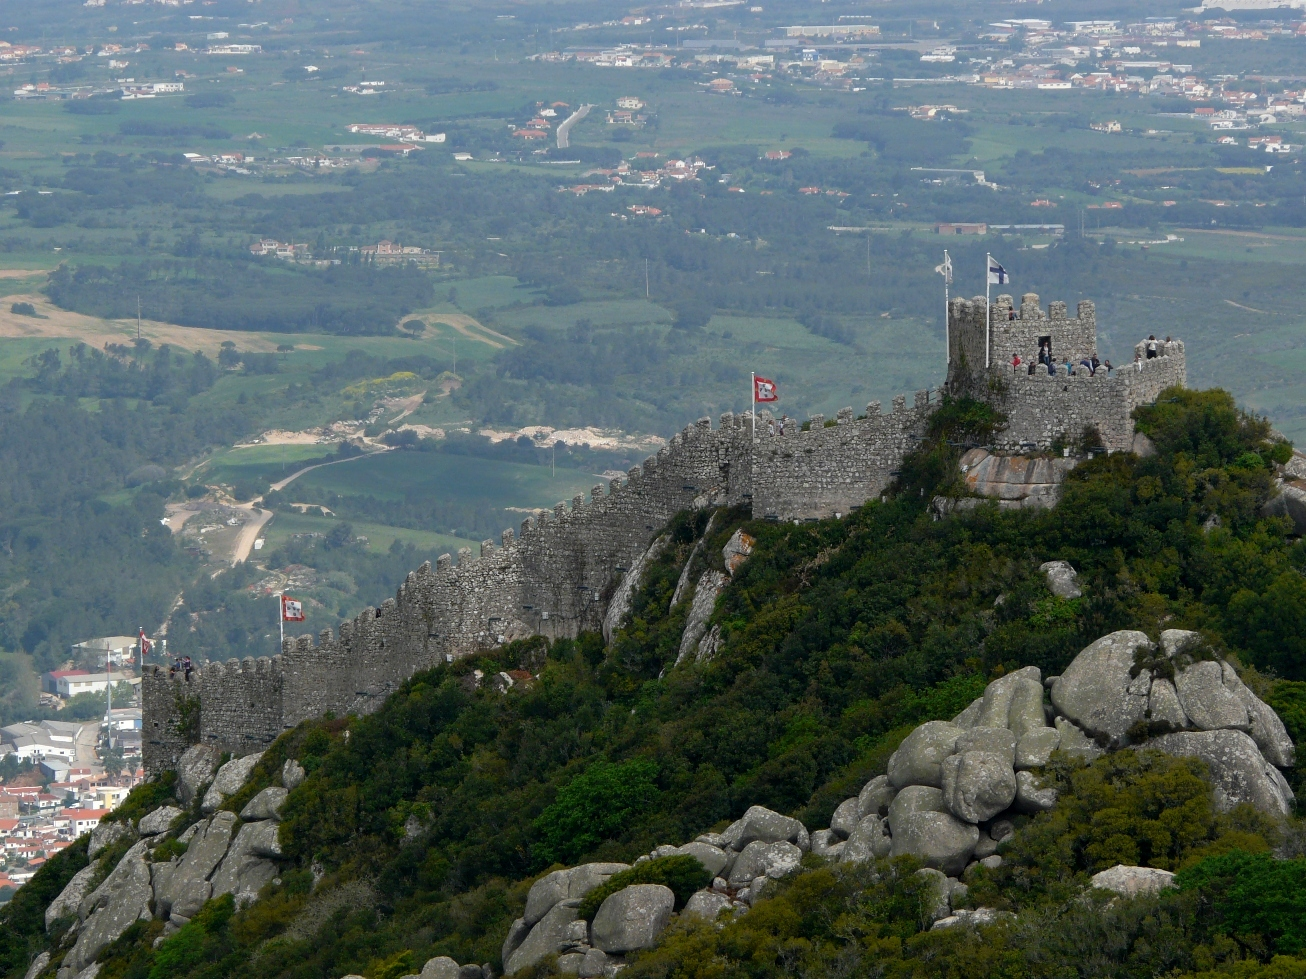 Picture 2, Castelo dos Mouros, Sintra, Portugal